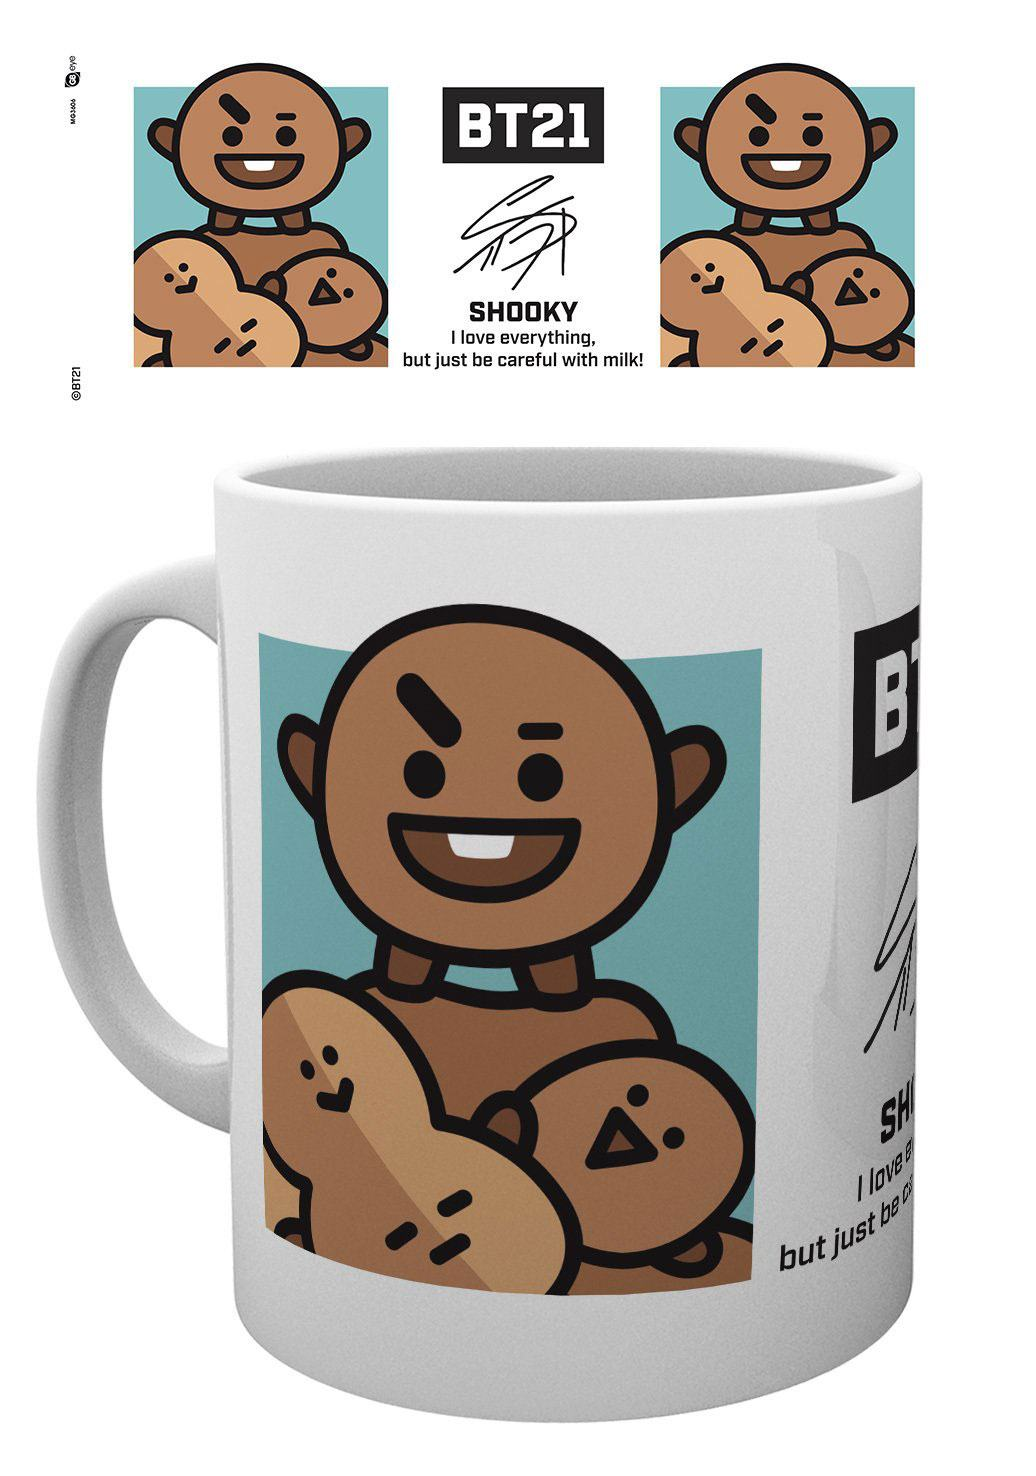 BT21 mug Shooky